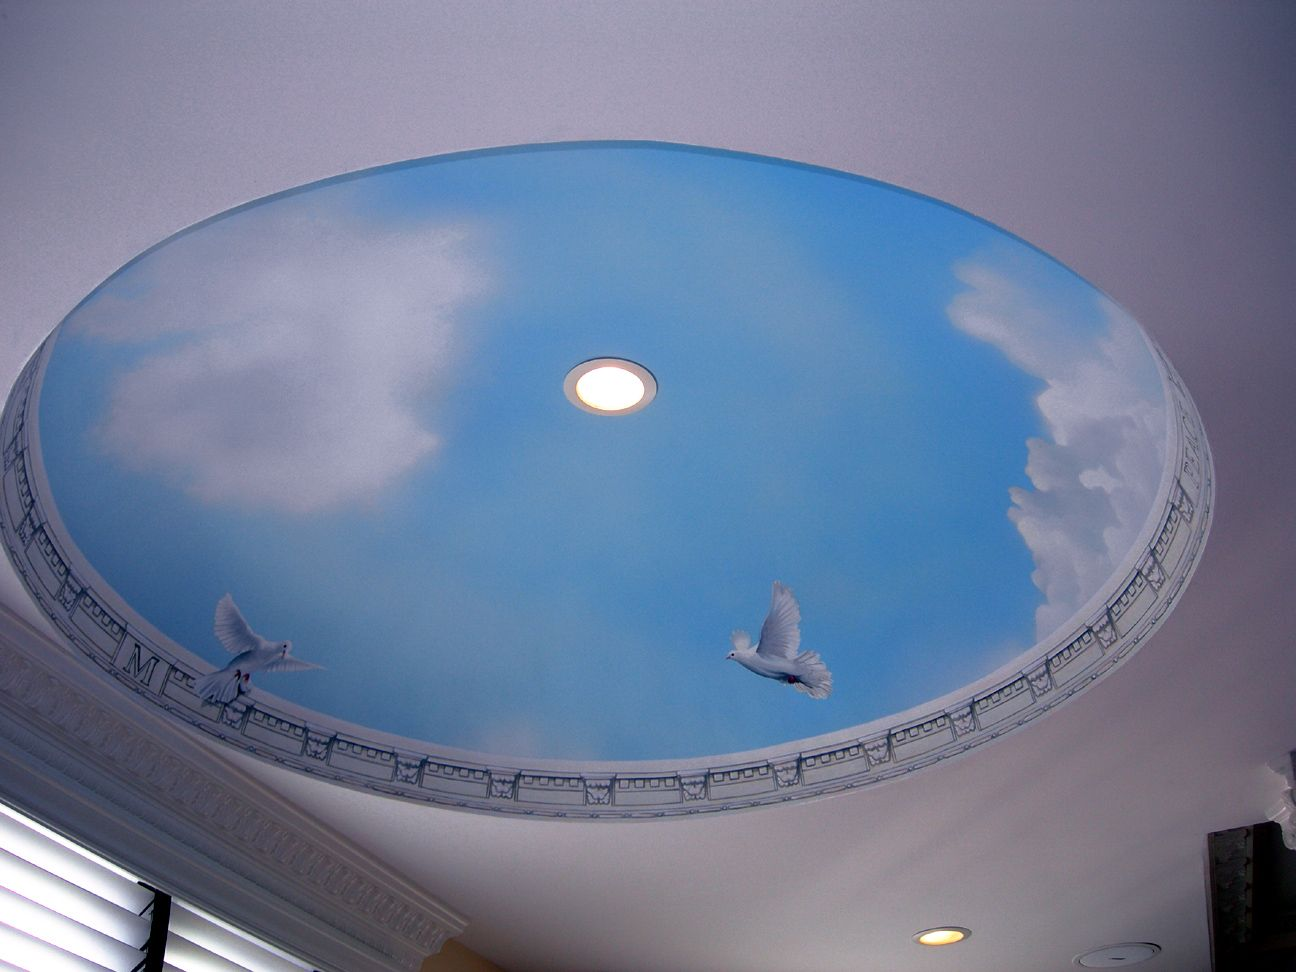 1000 images about design on pinterest ceiling design small living rooms and designs for small bathrooms ceiling domes with lighting